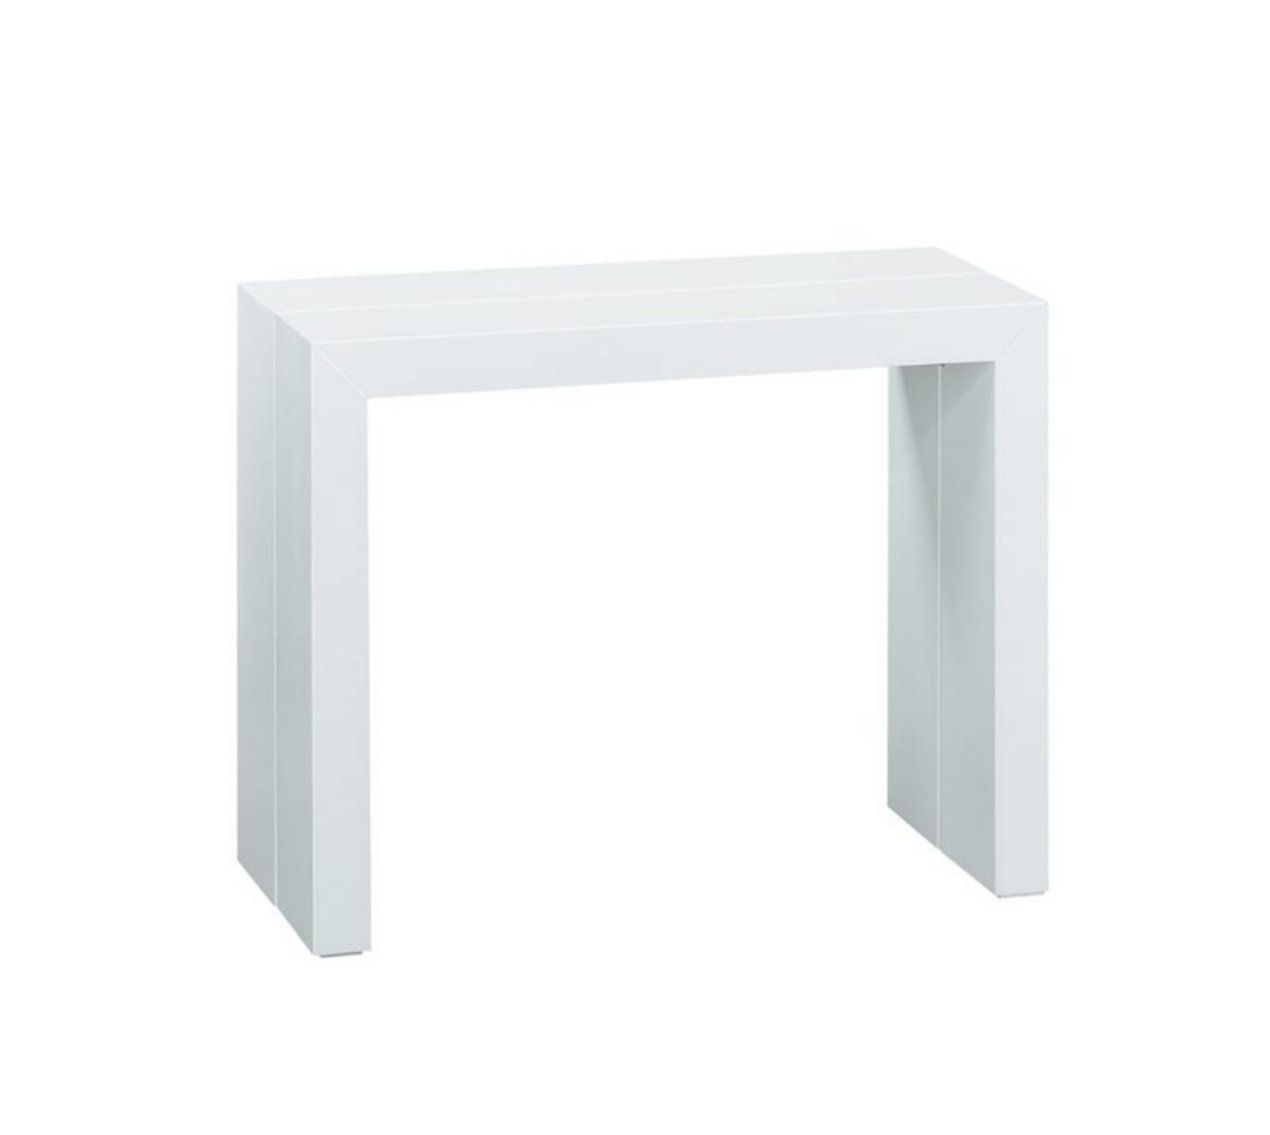 But Console Extensible Console Extensible Victoria 2 Blanc Tables Escamo Tables